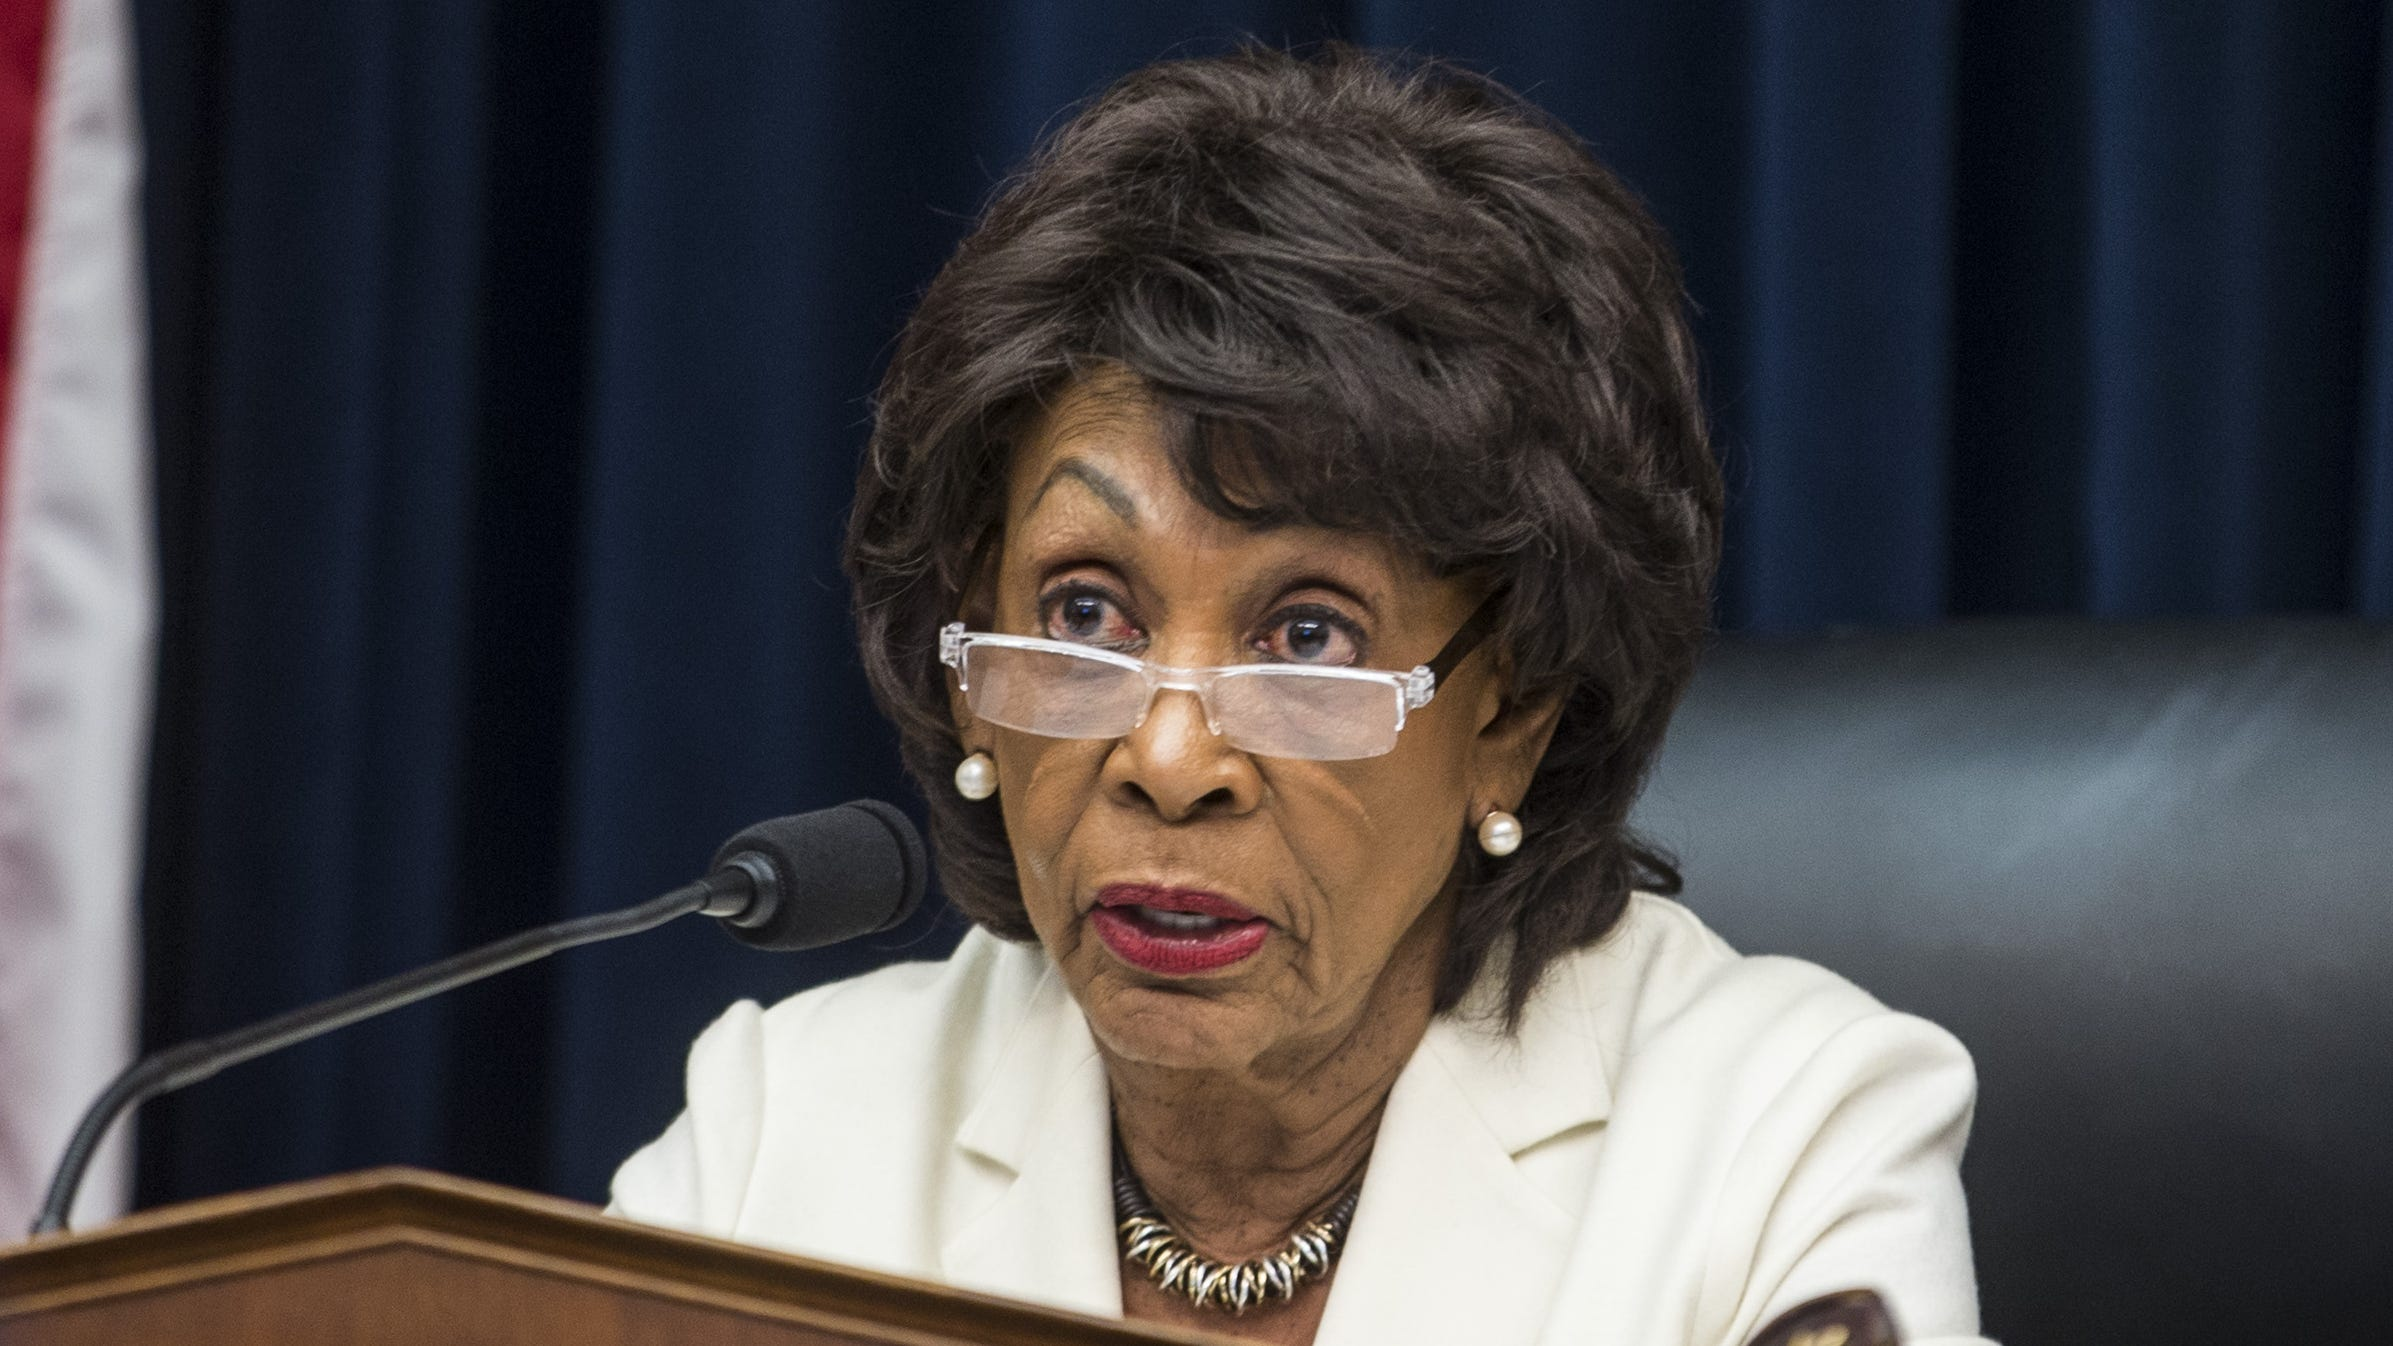 Chauvin Trial Judge Says Rep Waters Comments Could Lead To Appeal